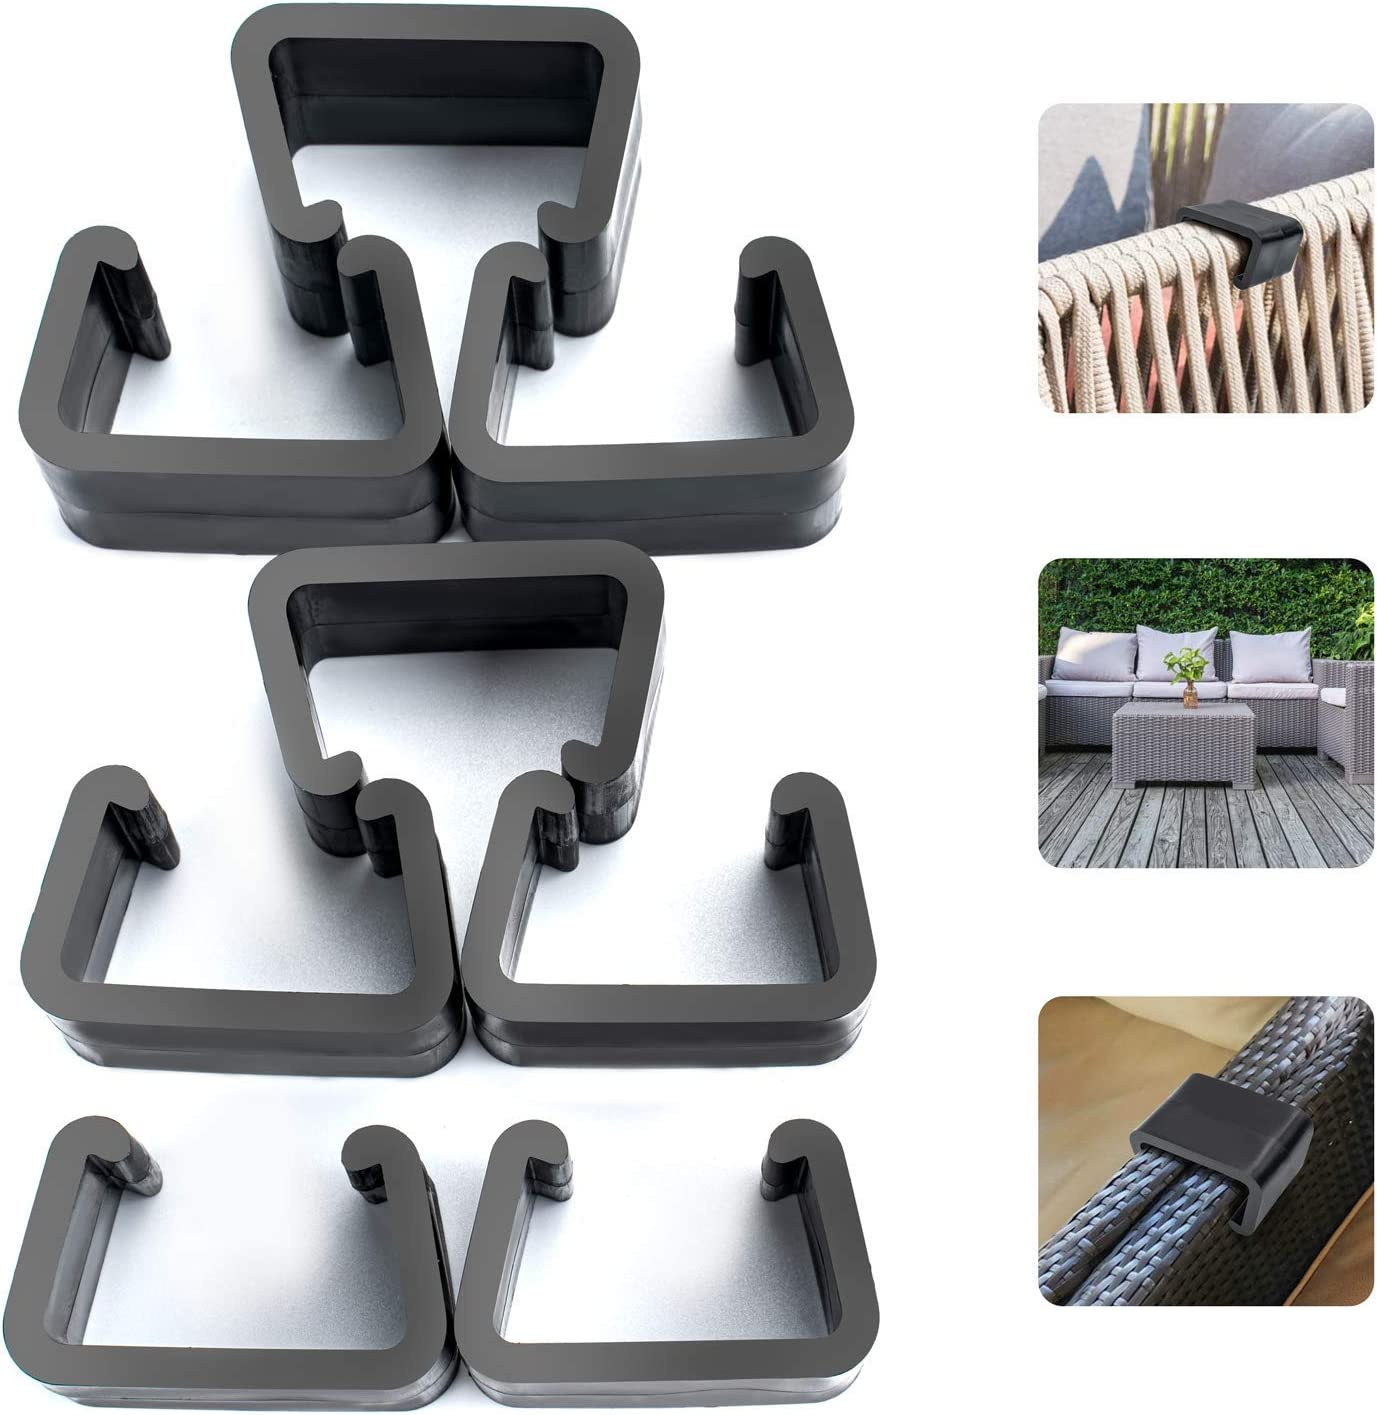 HENMI Patio Furniture Clips, Outdoor Wicker Furniture Rattan Chair Sofa Fasteners Clip Sectional Connector 8 PCS (Small)